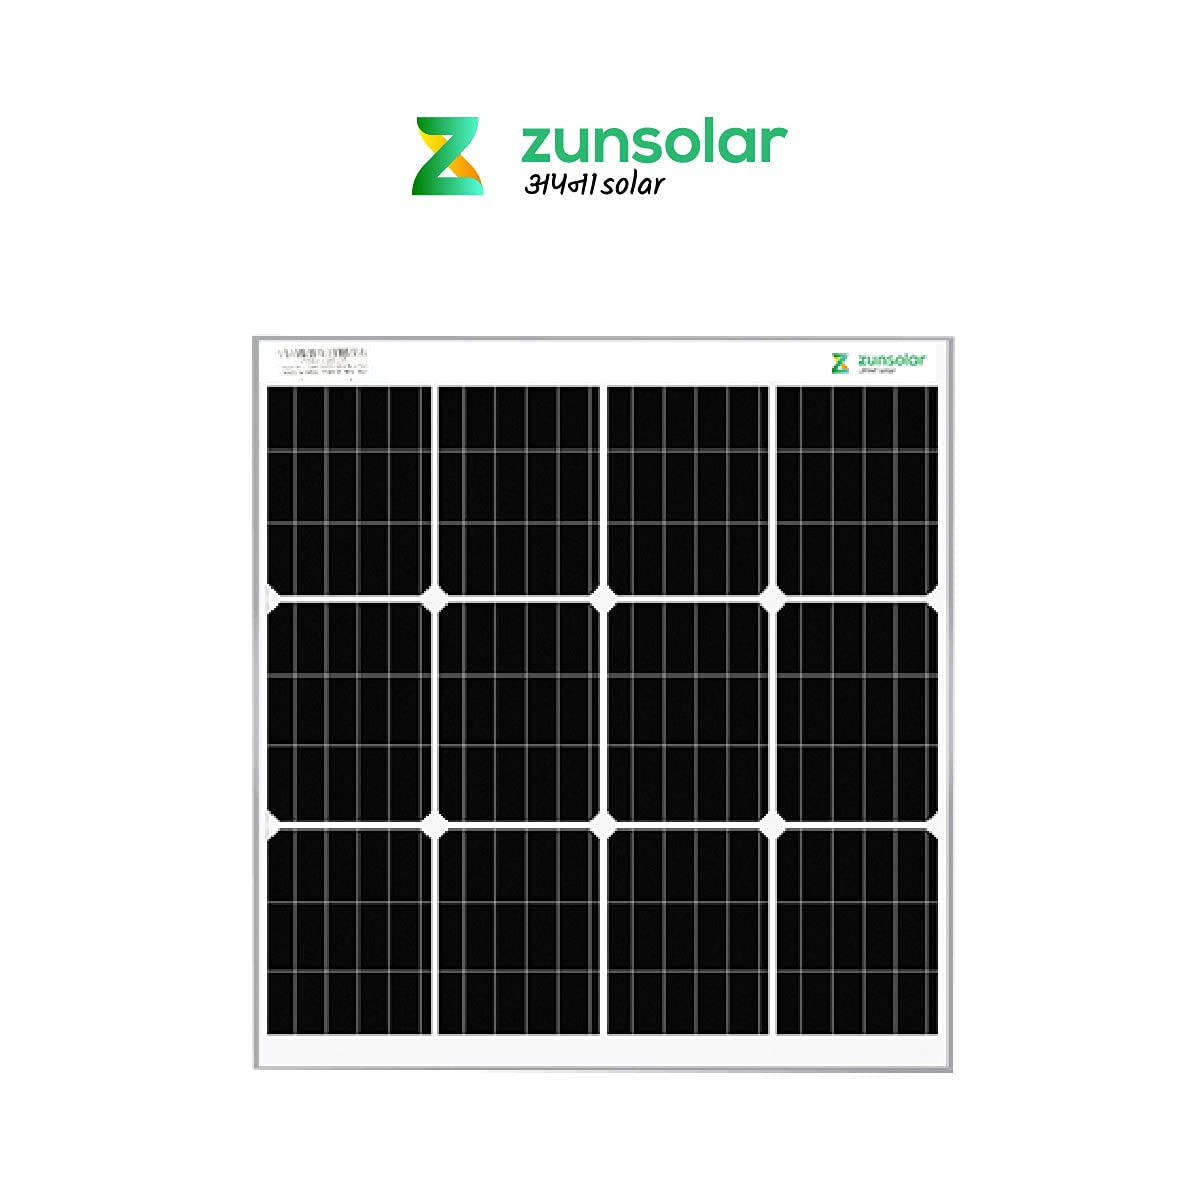 ZunSolar Helps India Go Solar, Launches High-Efficiency 50W Mono PERC Rooftop Solar Panel